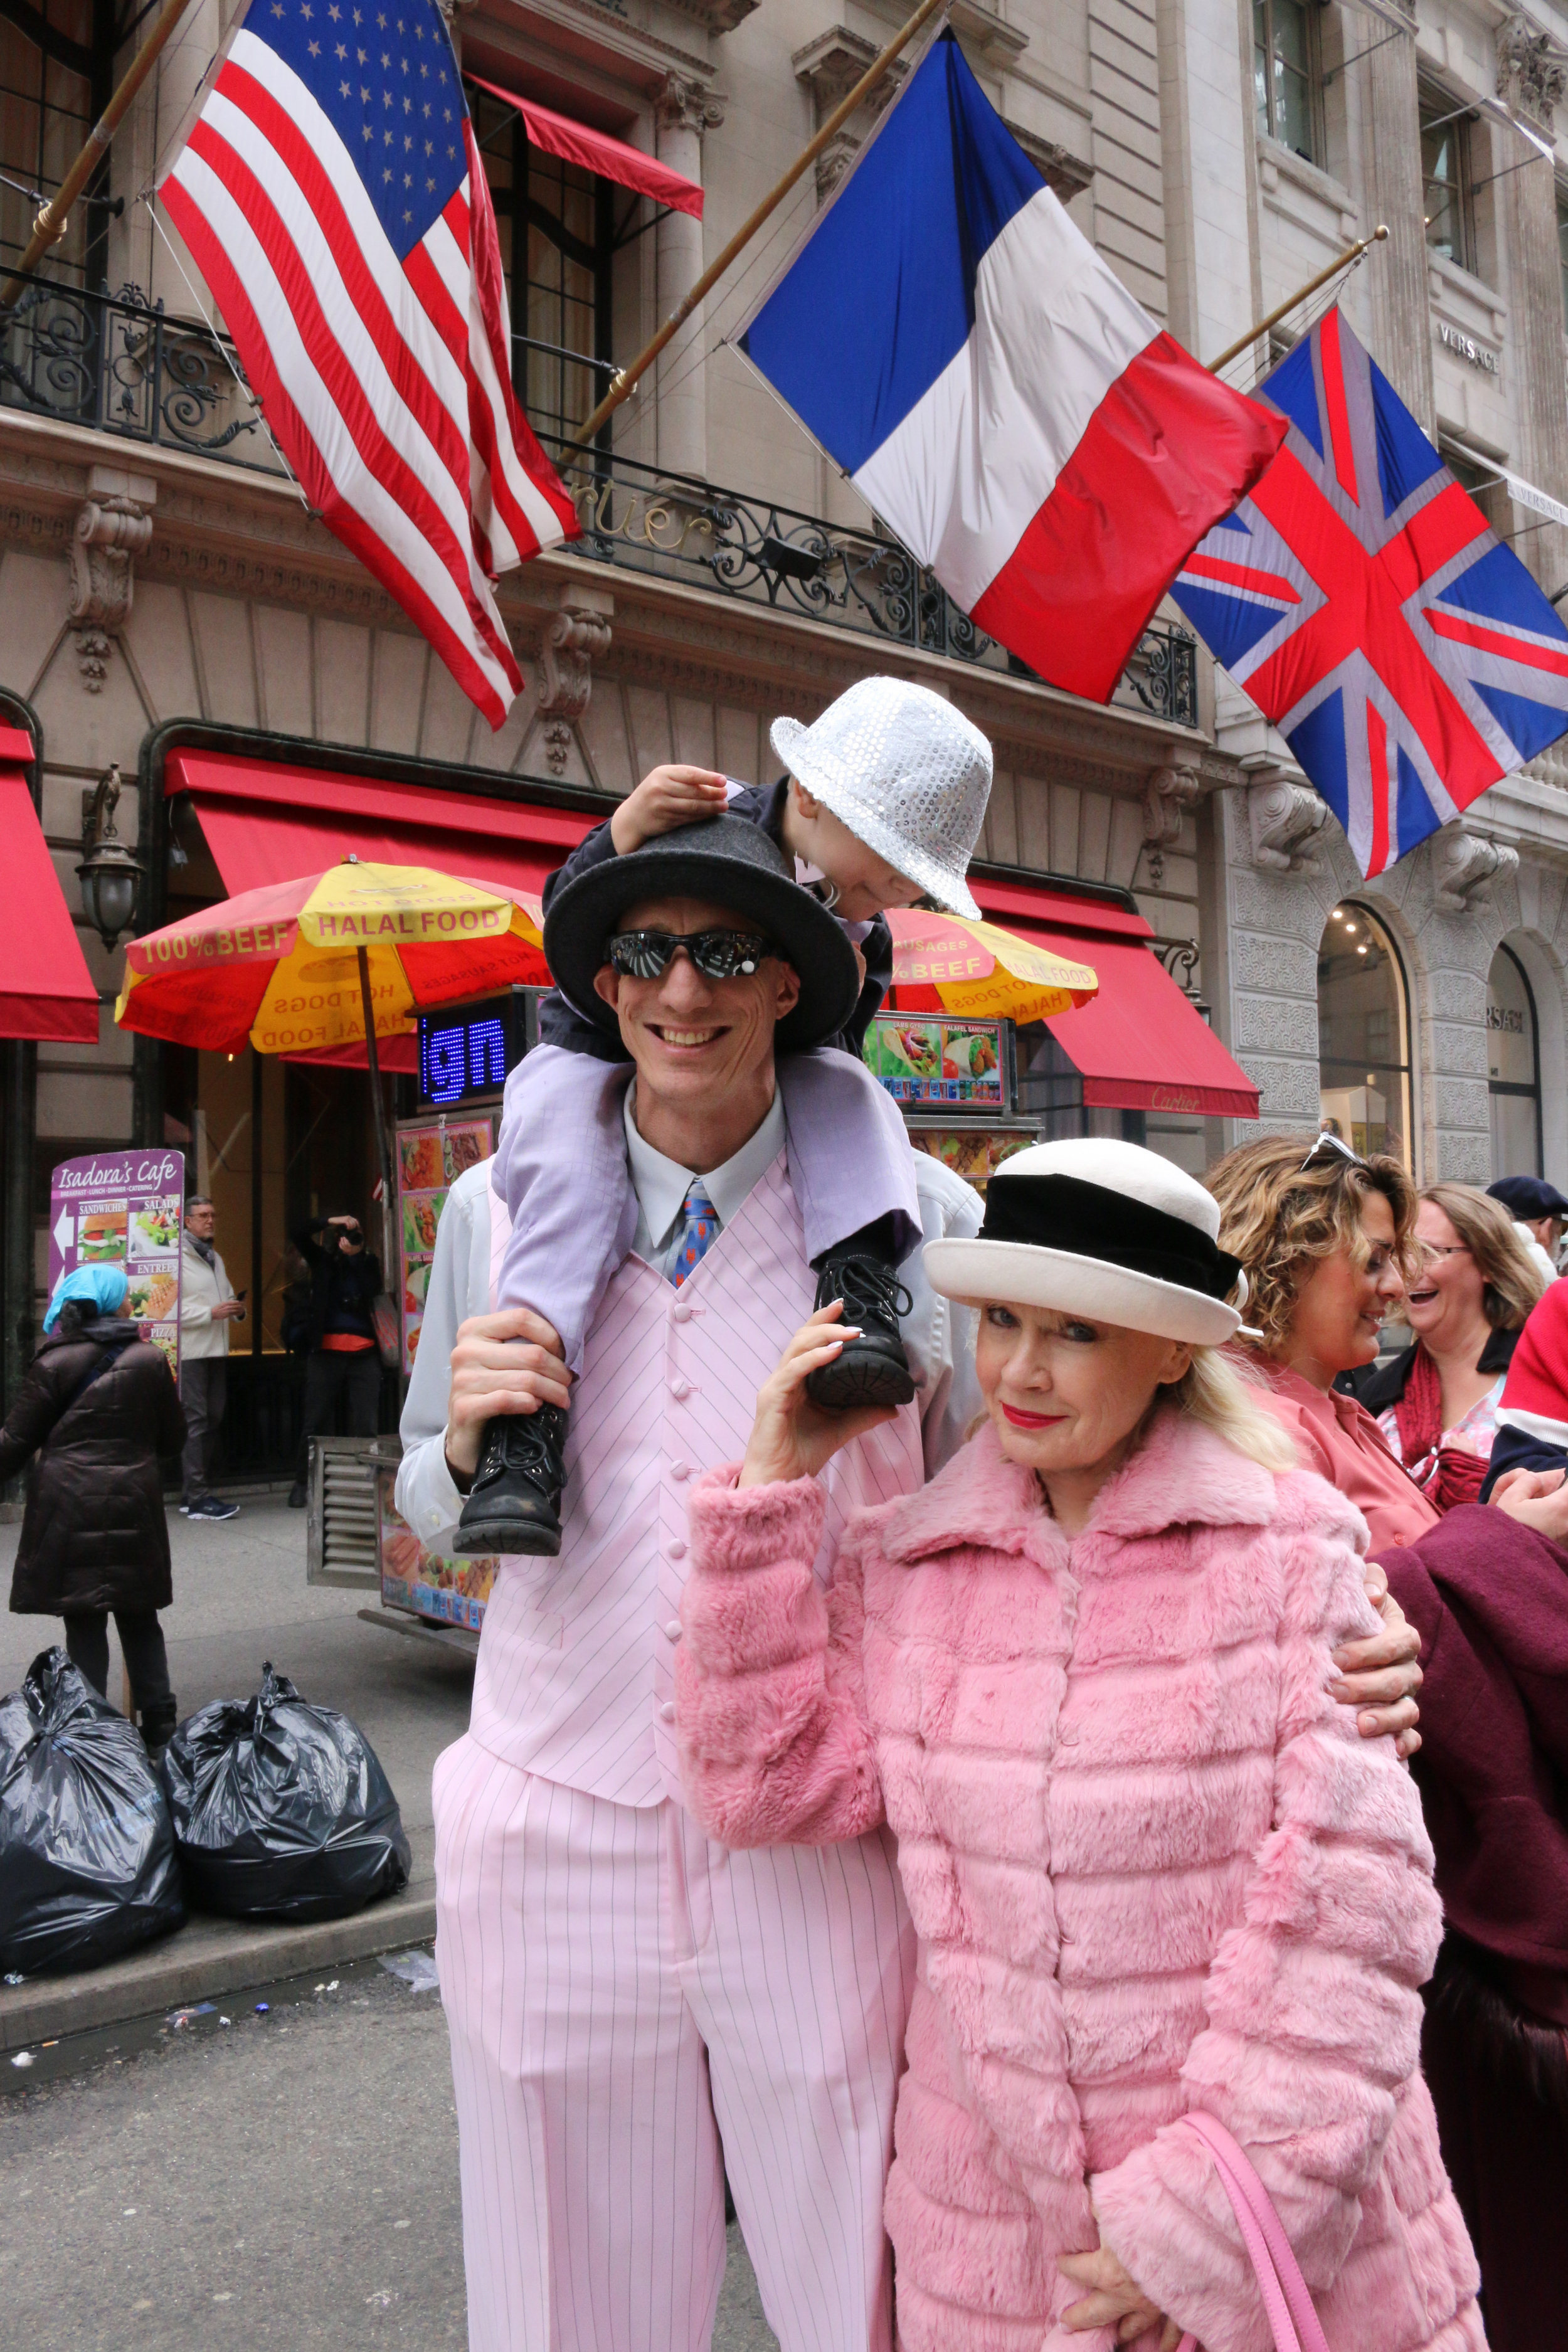 Lucille Khornak poses for a photo with a father son duo at the 2018 Easter Parade in New York City